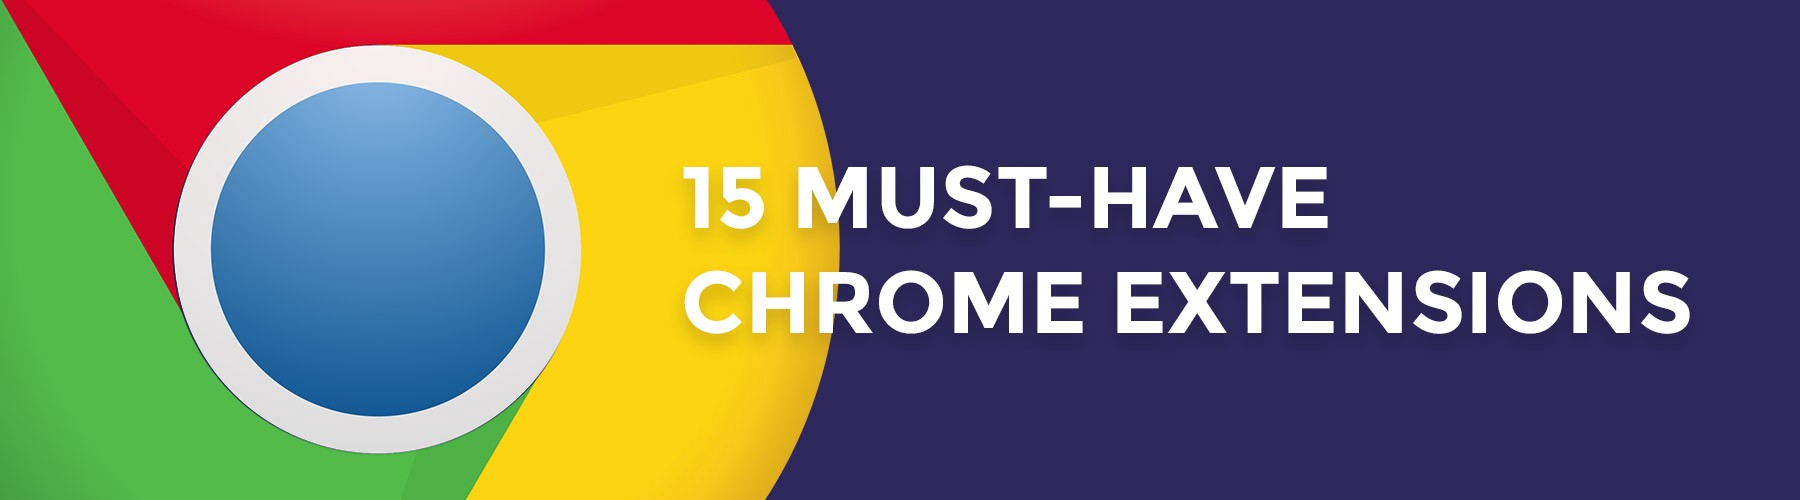 15 Must Have Chrome Extensions For Web Designers And Front End Developer By Muzli Muzli Design Inspiration